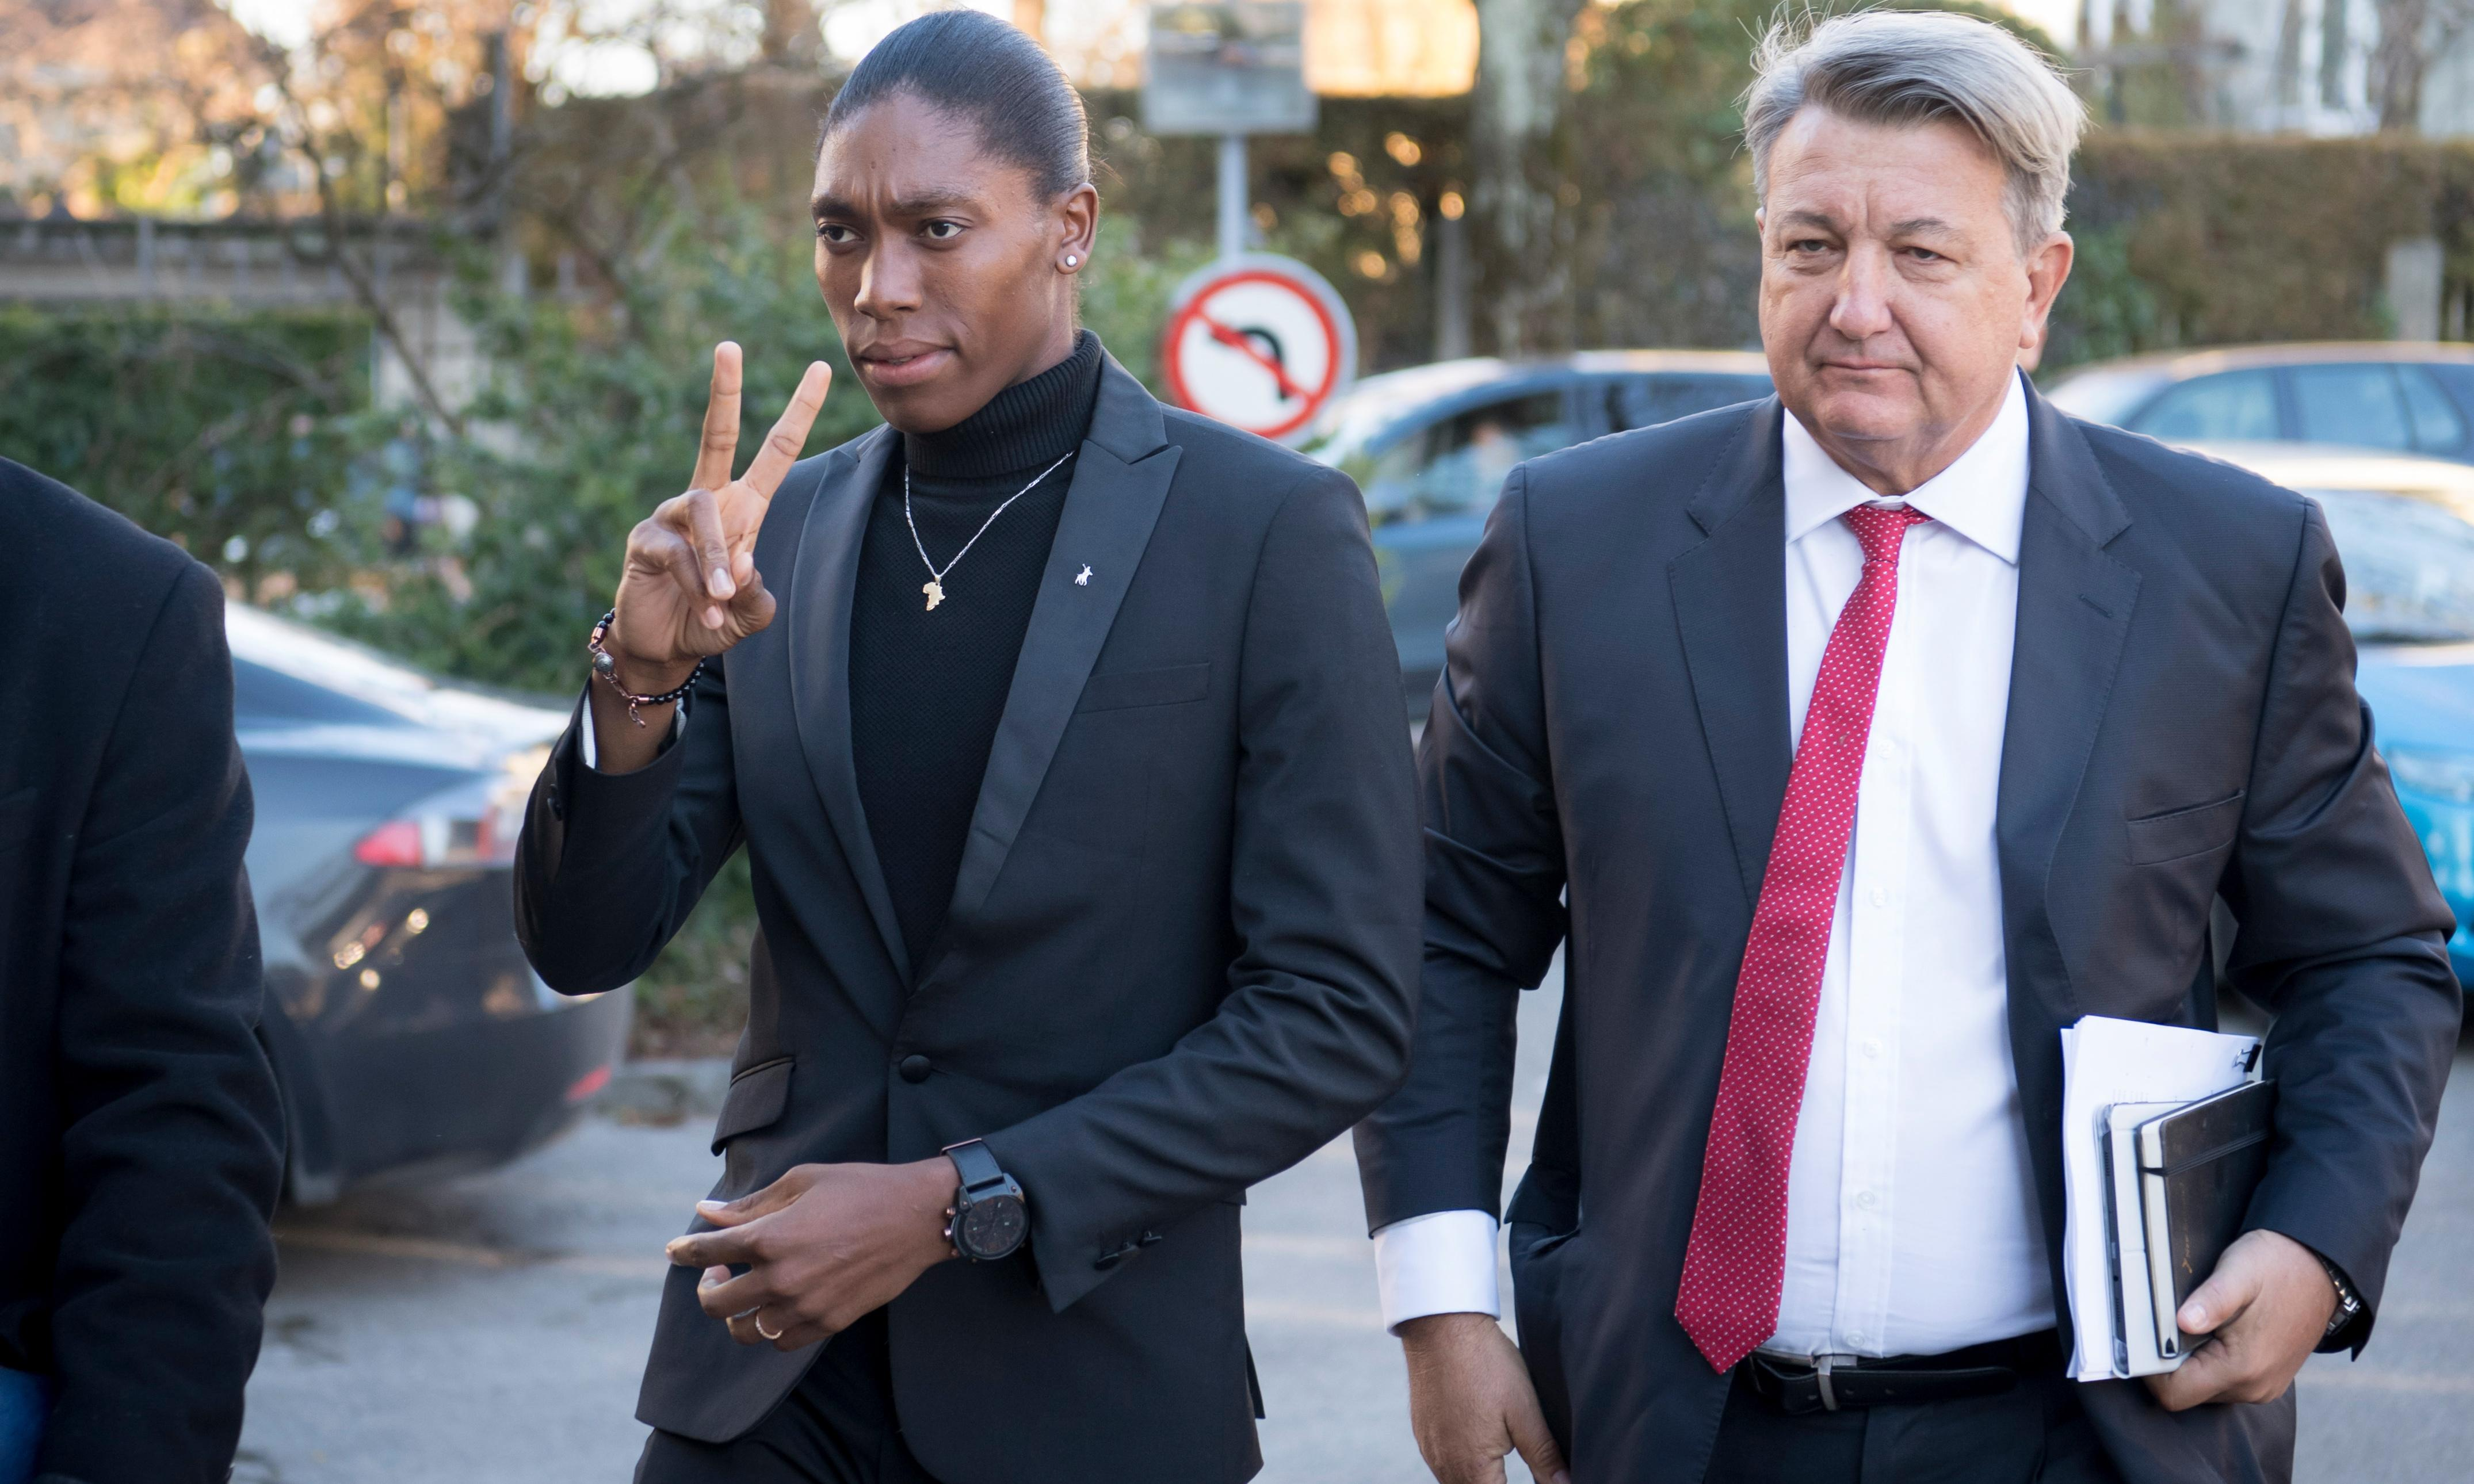 Caster Semenya's lawyers accuse the IAAF of underhand tactics